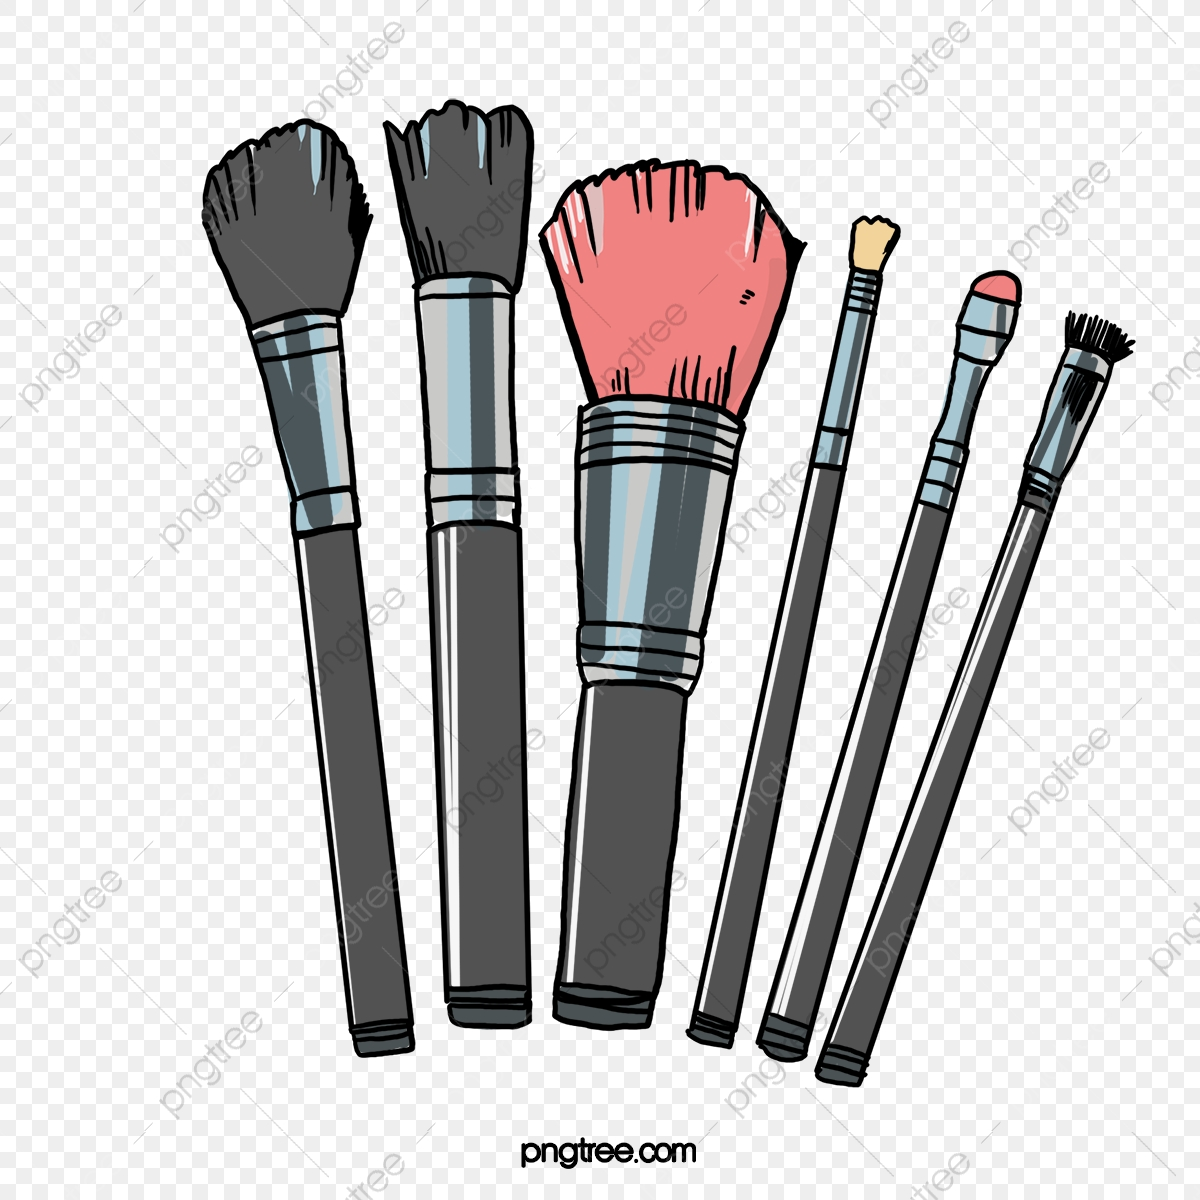 Hand Painted Makeup Brush, Makeup Clipart, Brush Clipart.